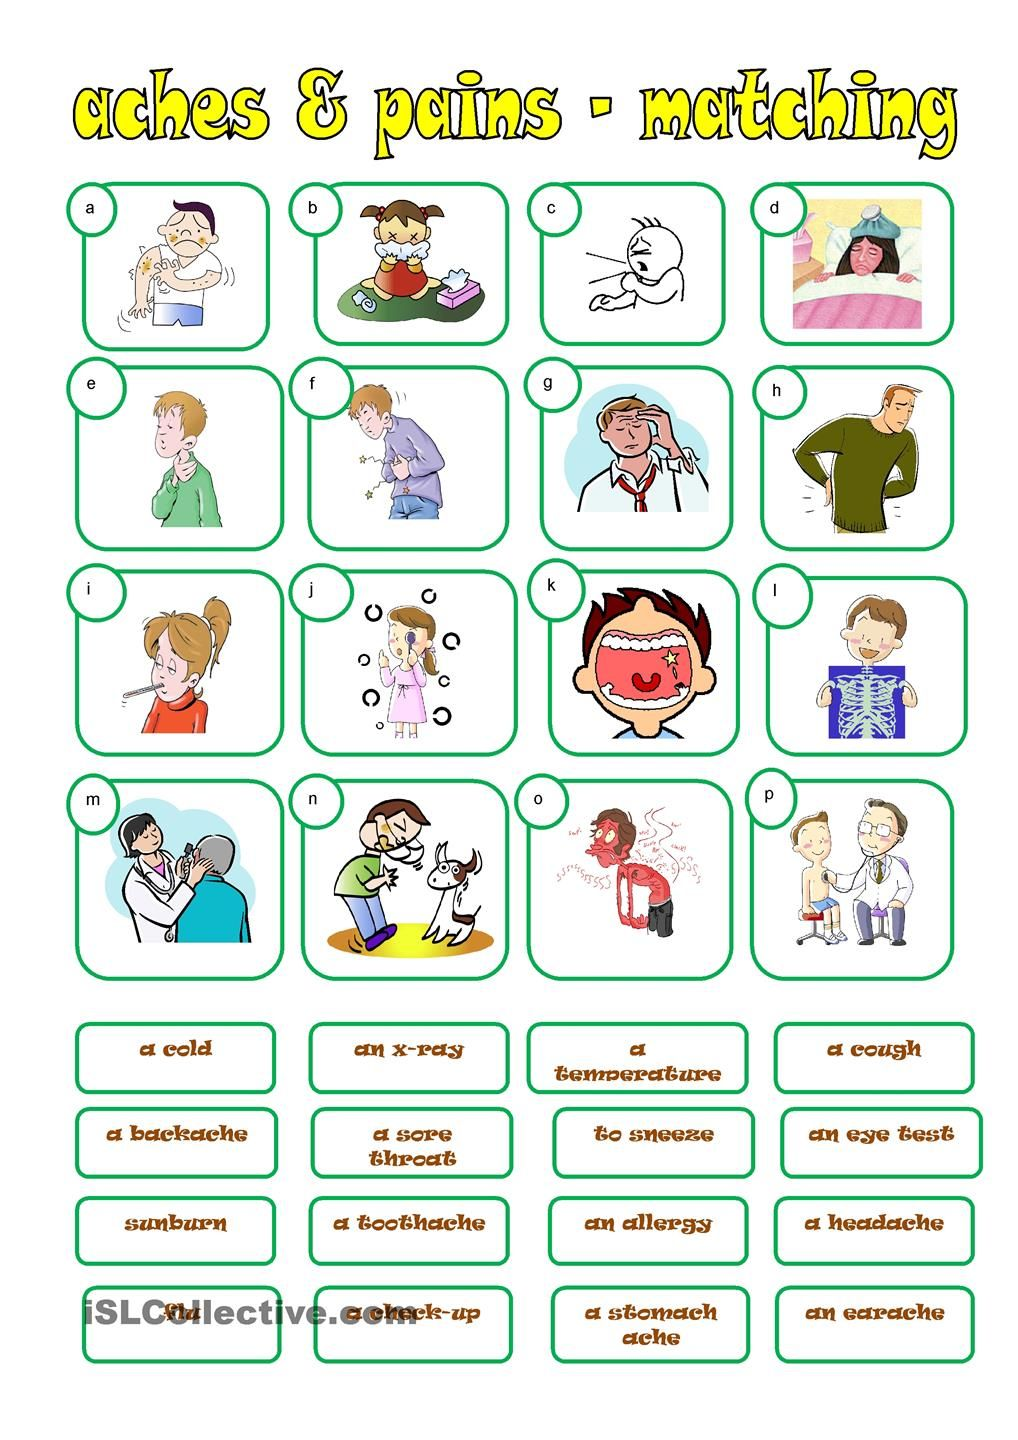 ACHES & PAINS matching Vocabulary Pdf, English Vocabulary, French Practice, Teaching  French,